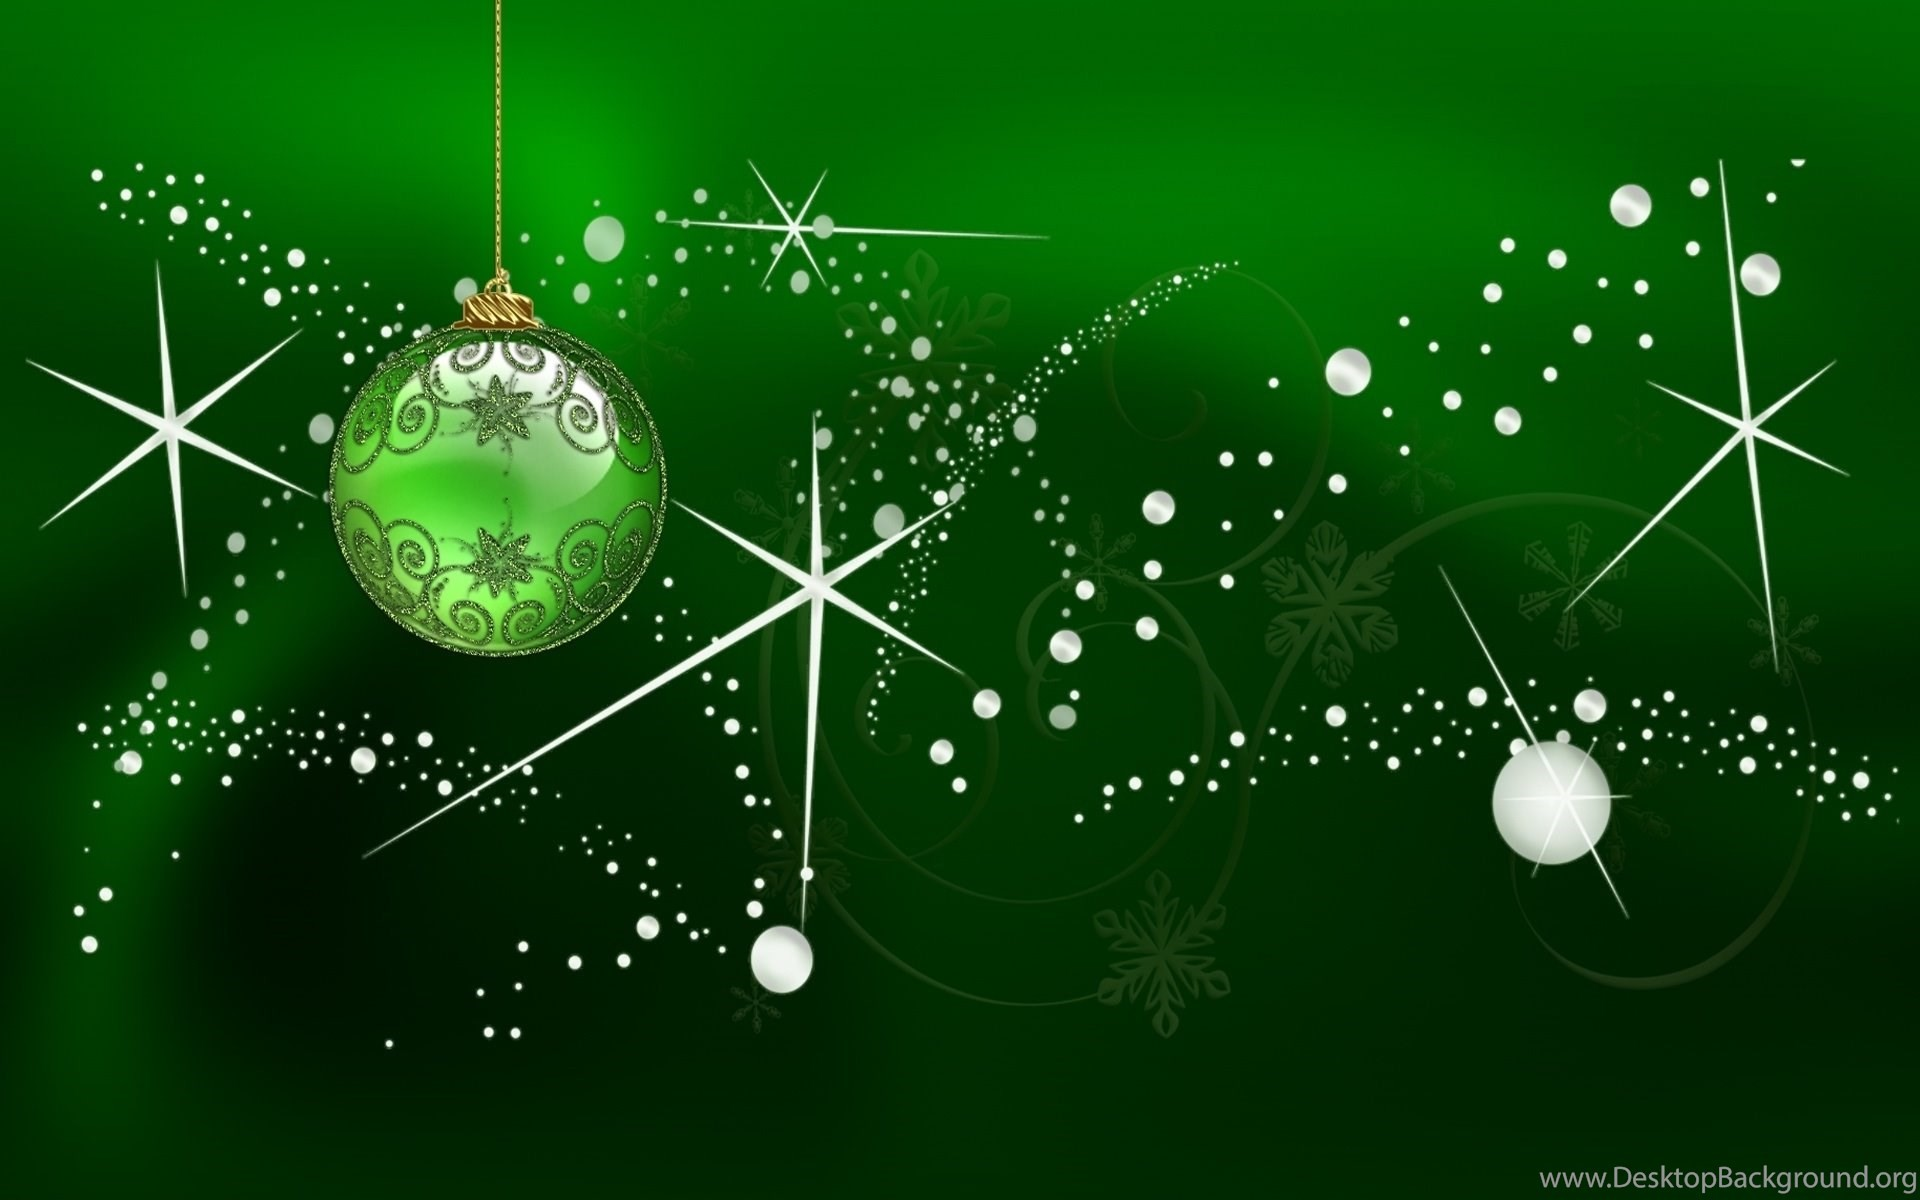 1920x1200 widescreen - Dark Green Christmas Background